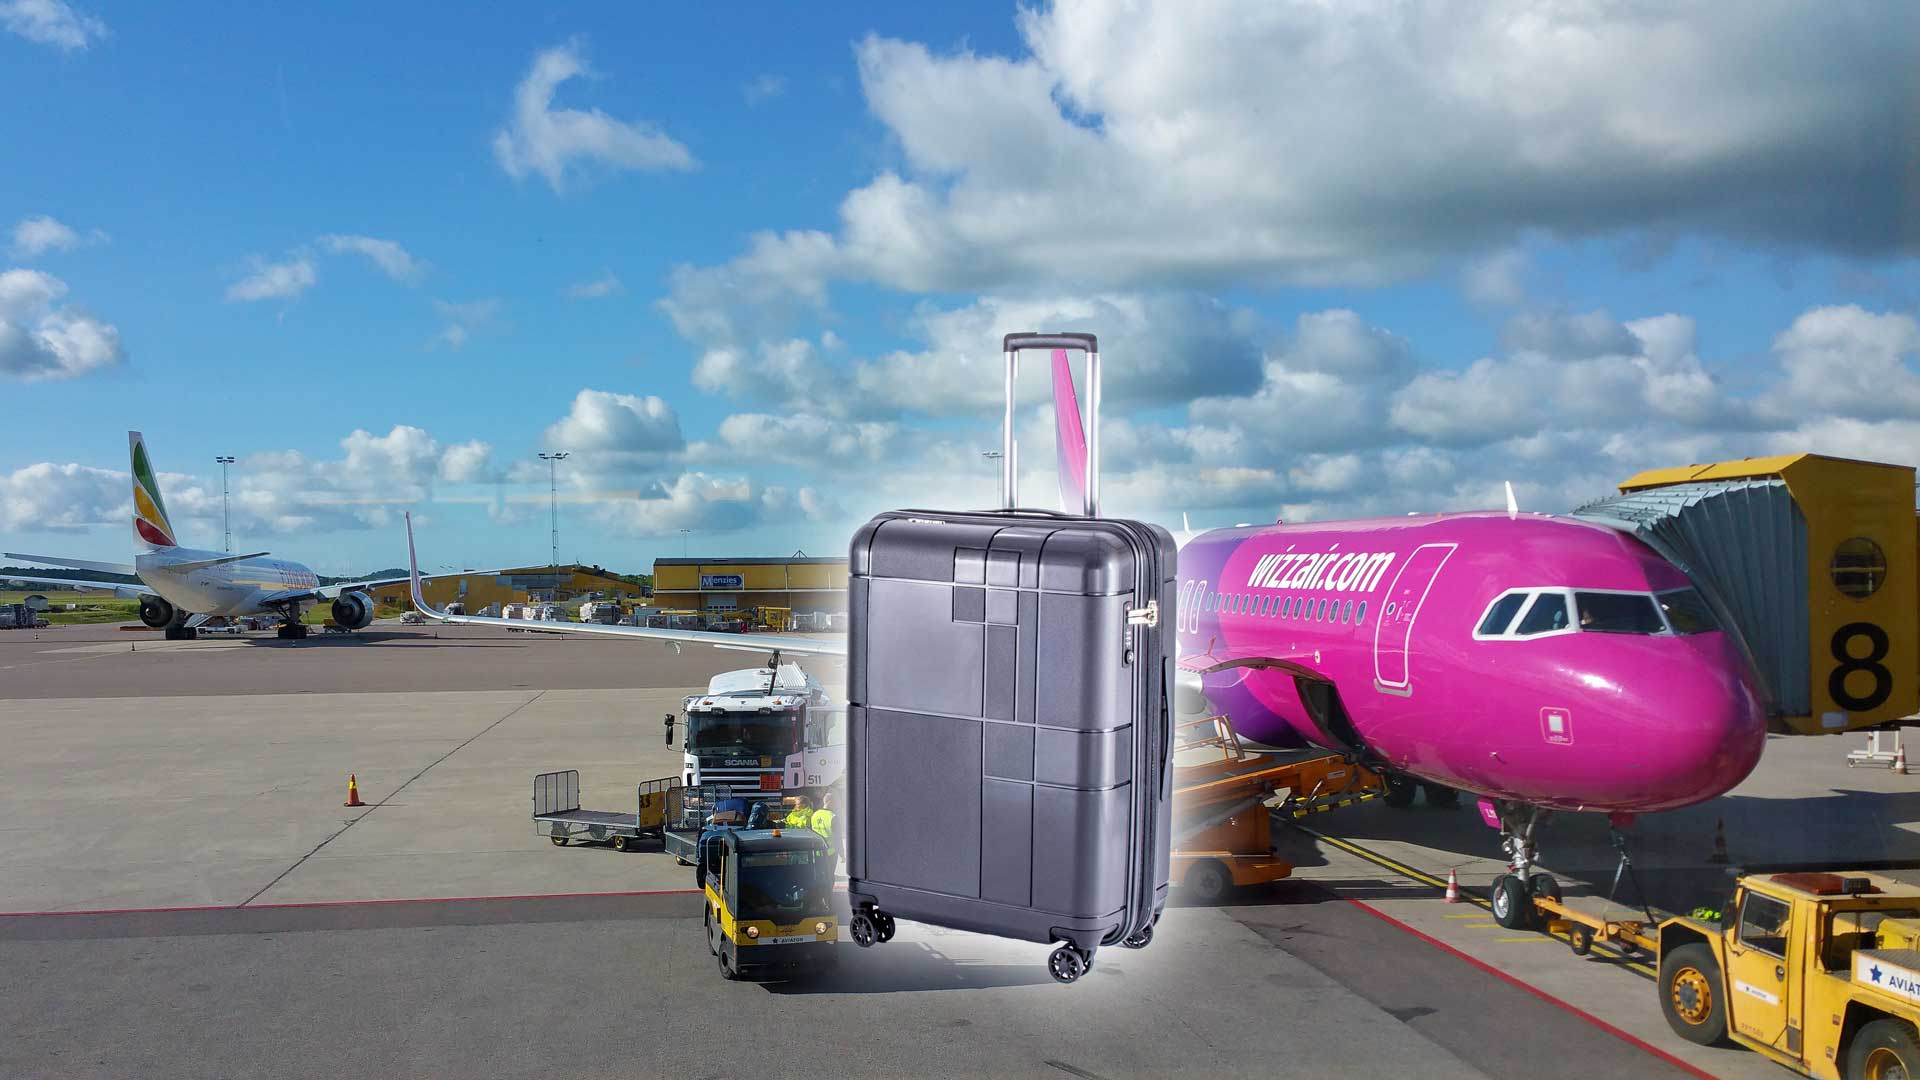 wizzair-luggage